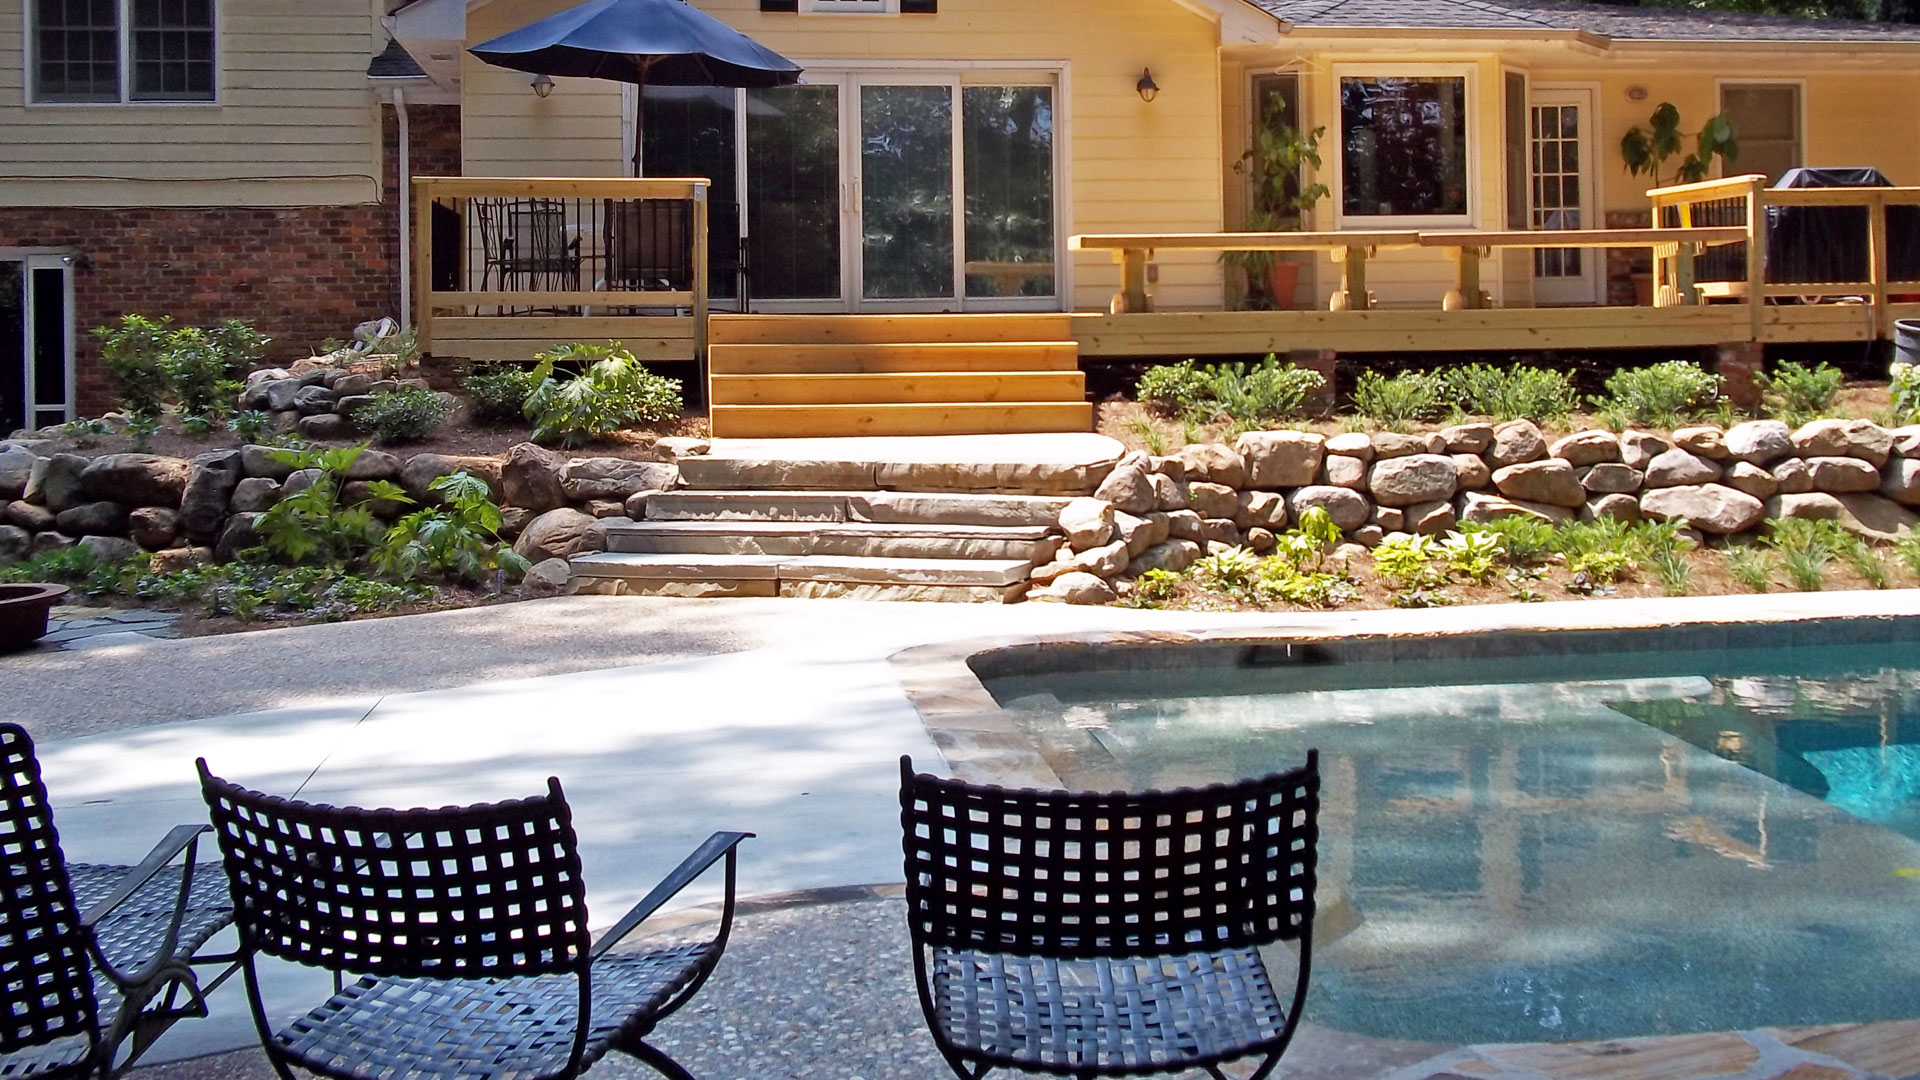 Rock retaining wall with landscaping around a pool at a home in Mableton, GA.